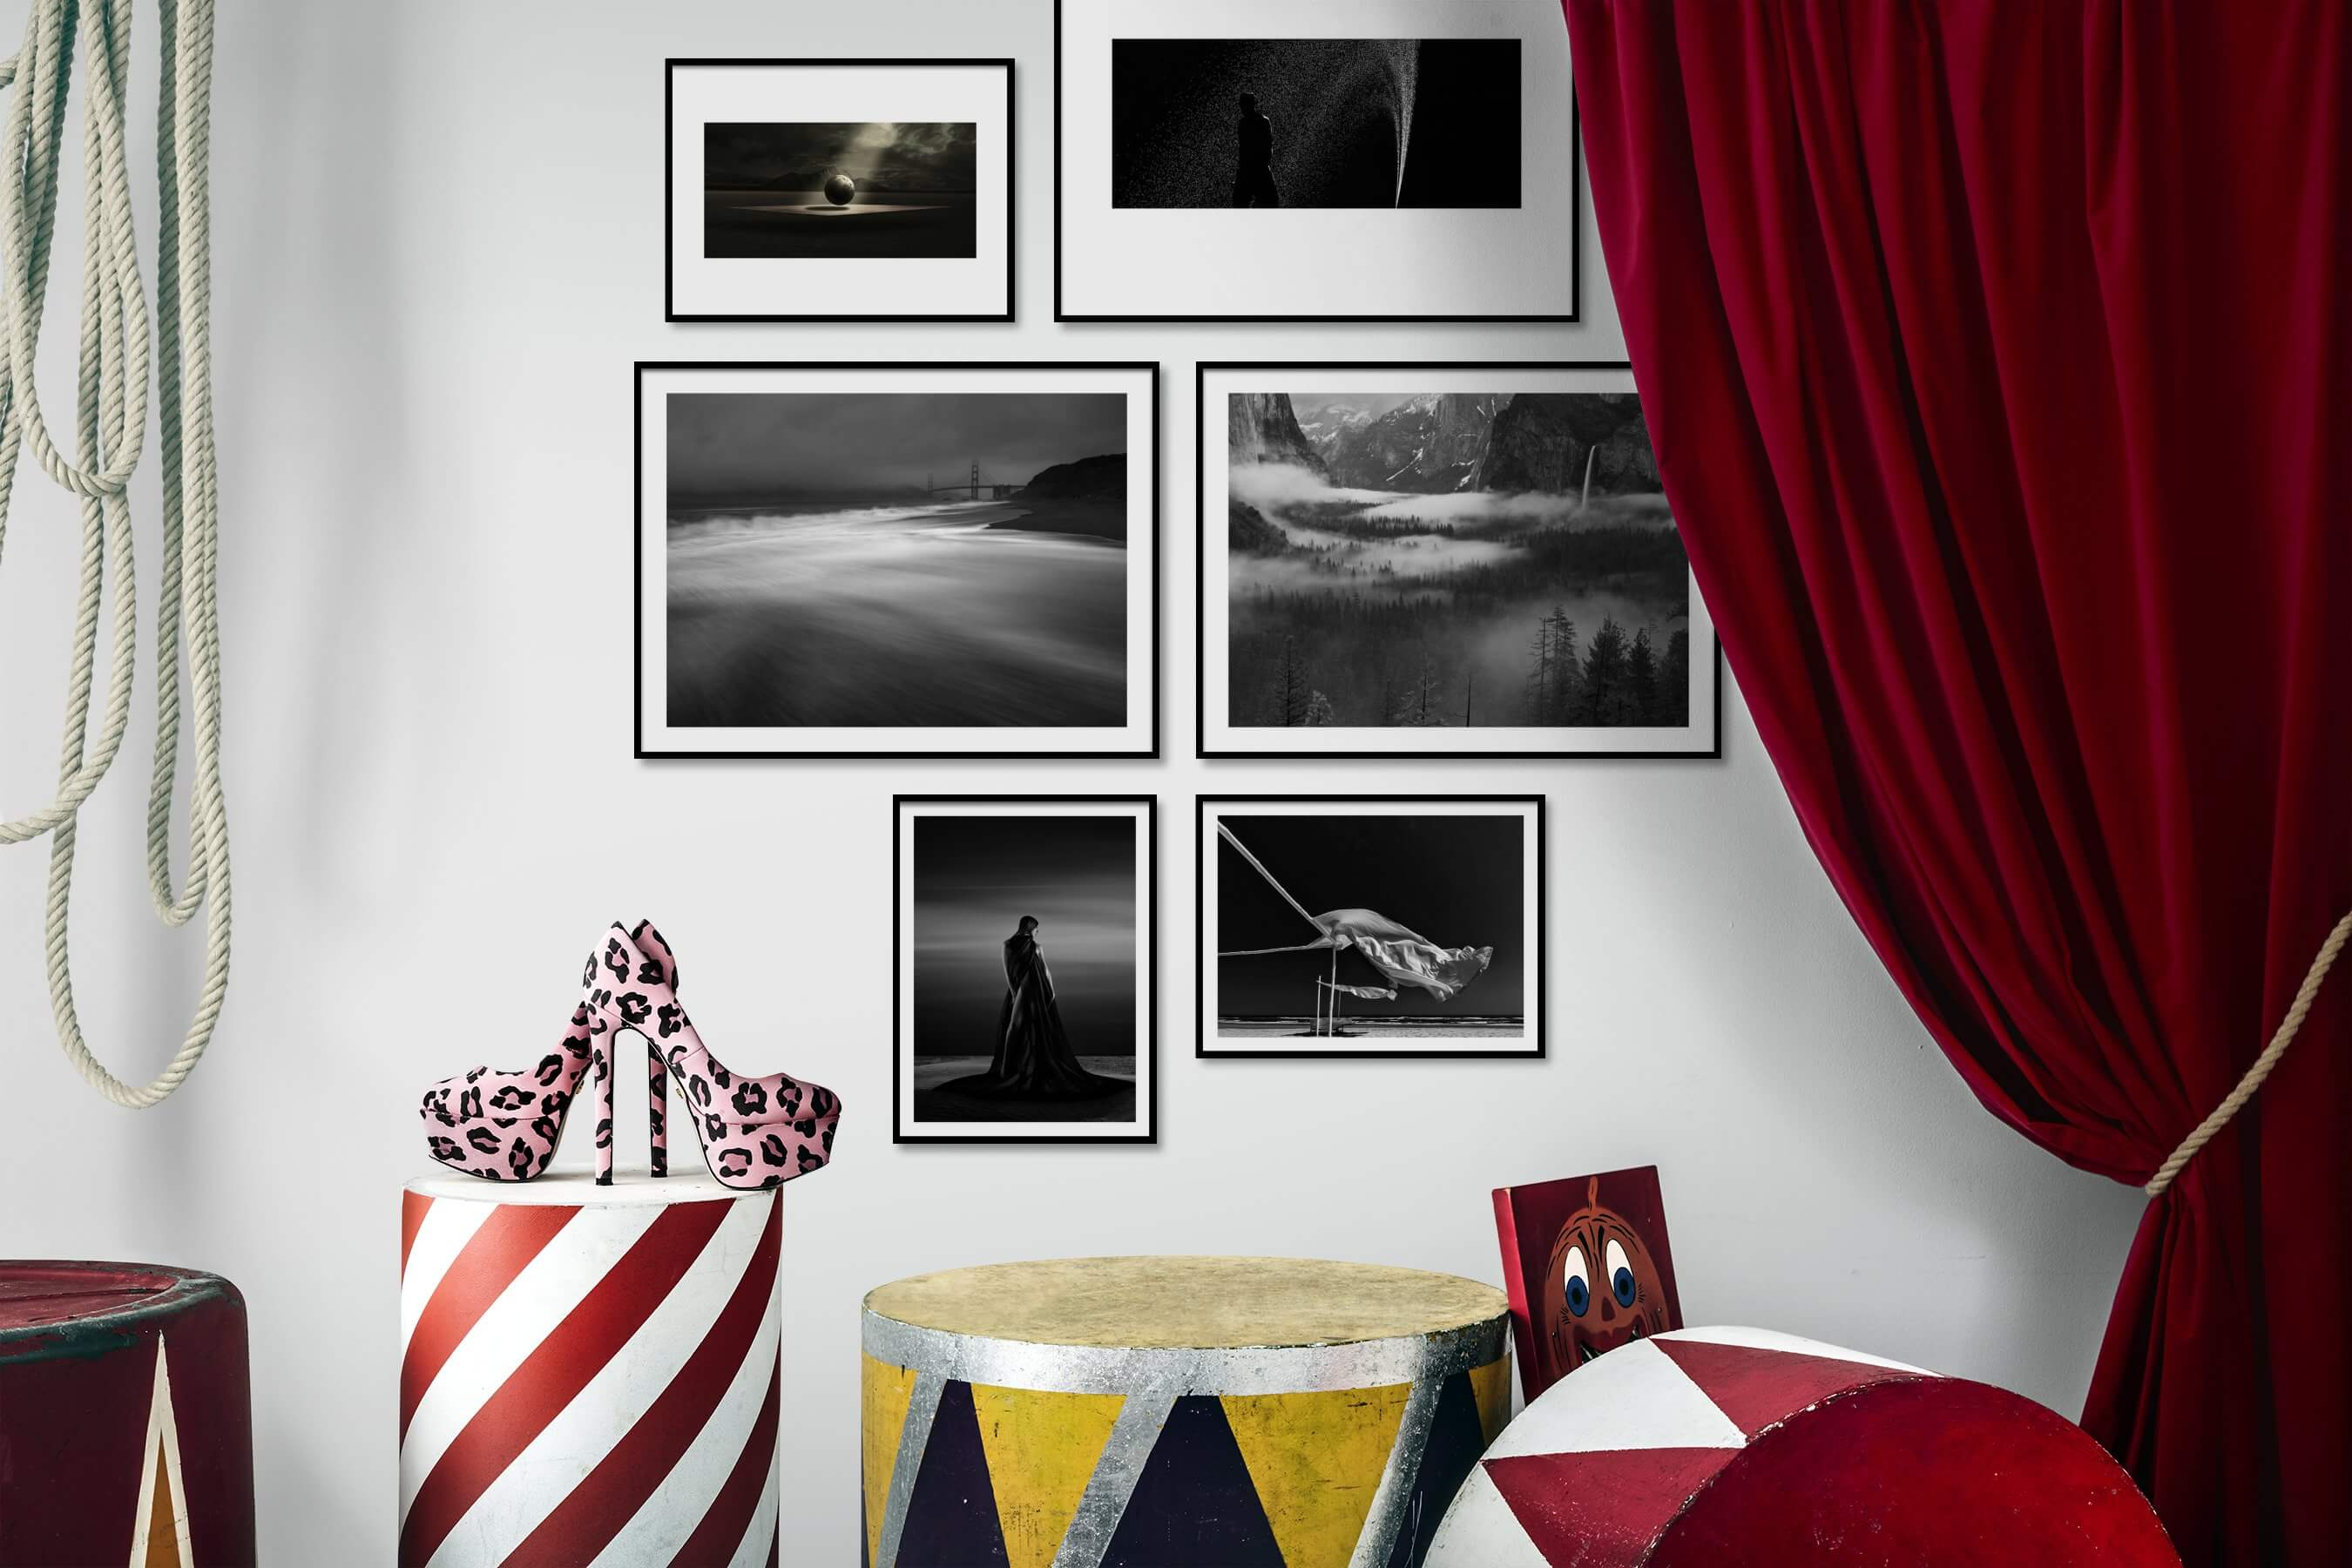 Gallery wall idea with six framed pictures arranged on a wall depicting Artsy, Black & White, For the Minimalist, Beach & Water, Americana, Nature, and Fashion & Beauty